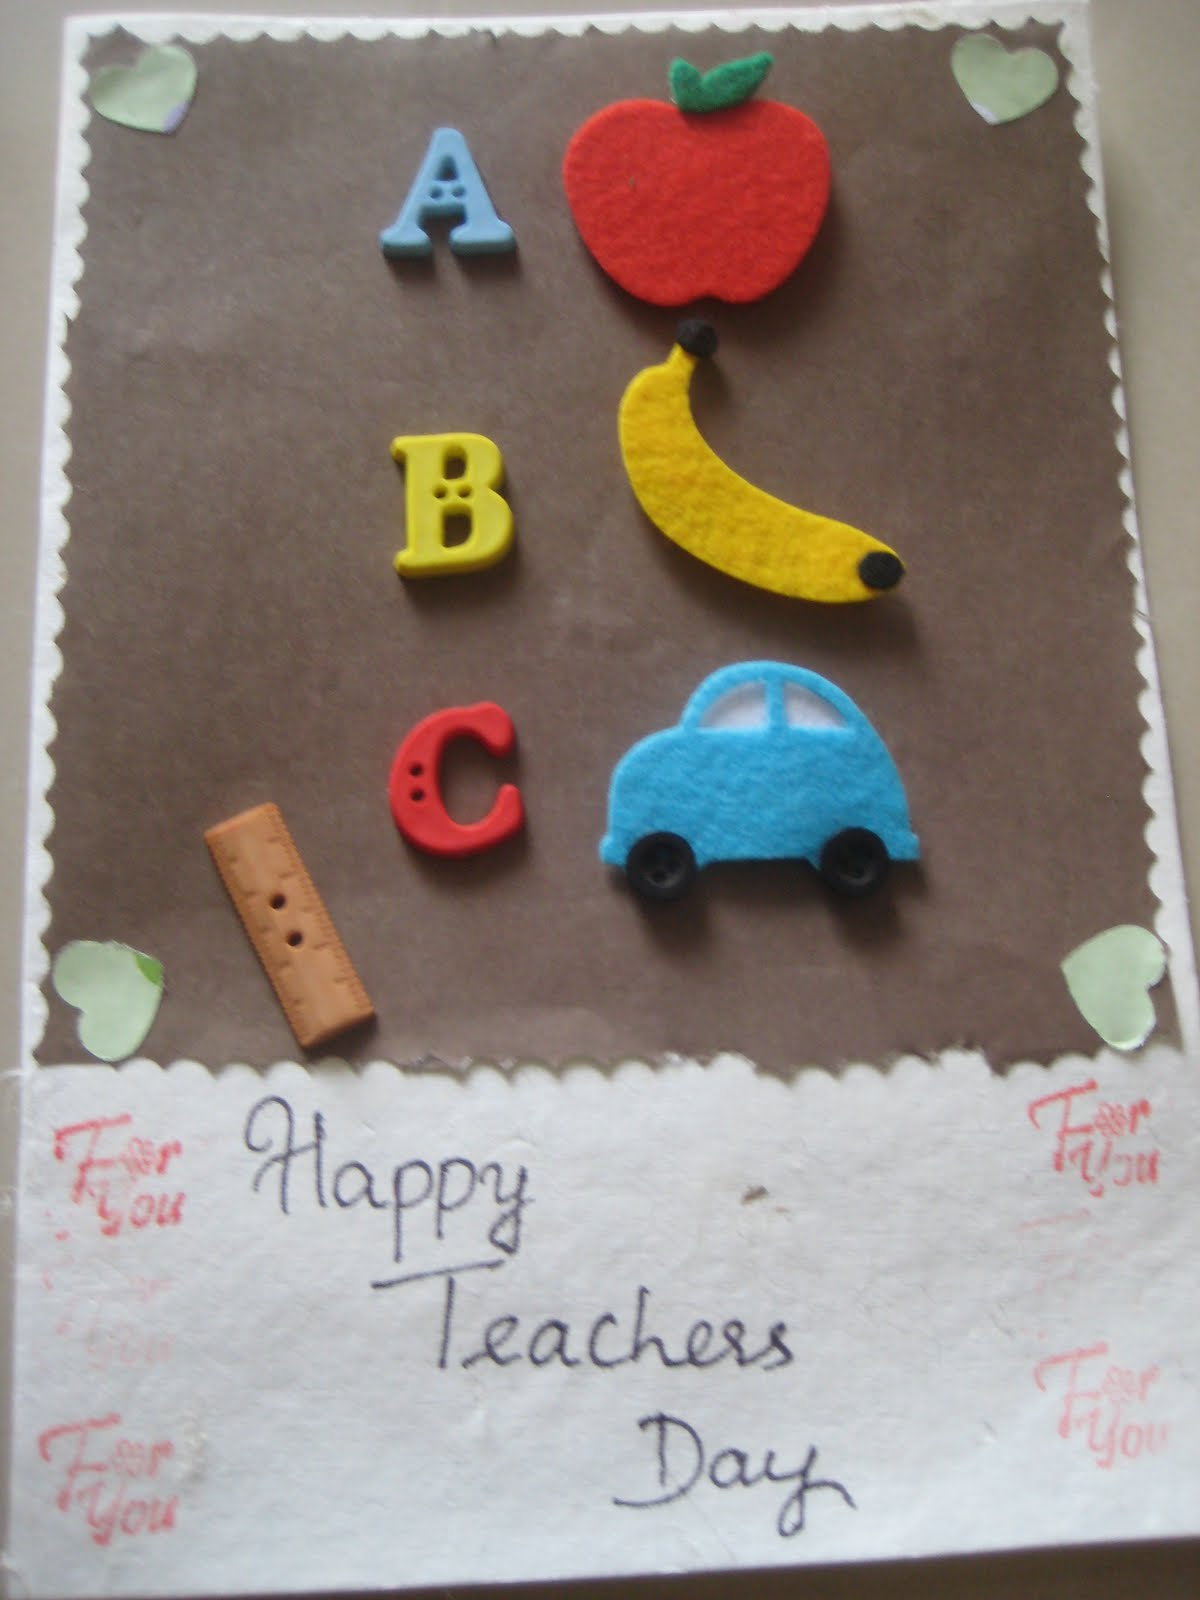 Happymomentzz Crafting By Sharada Dilip Teachers Day Card